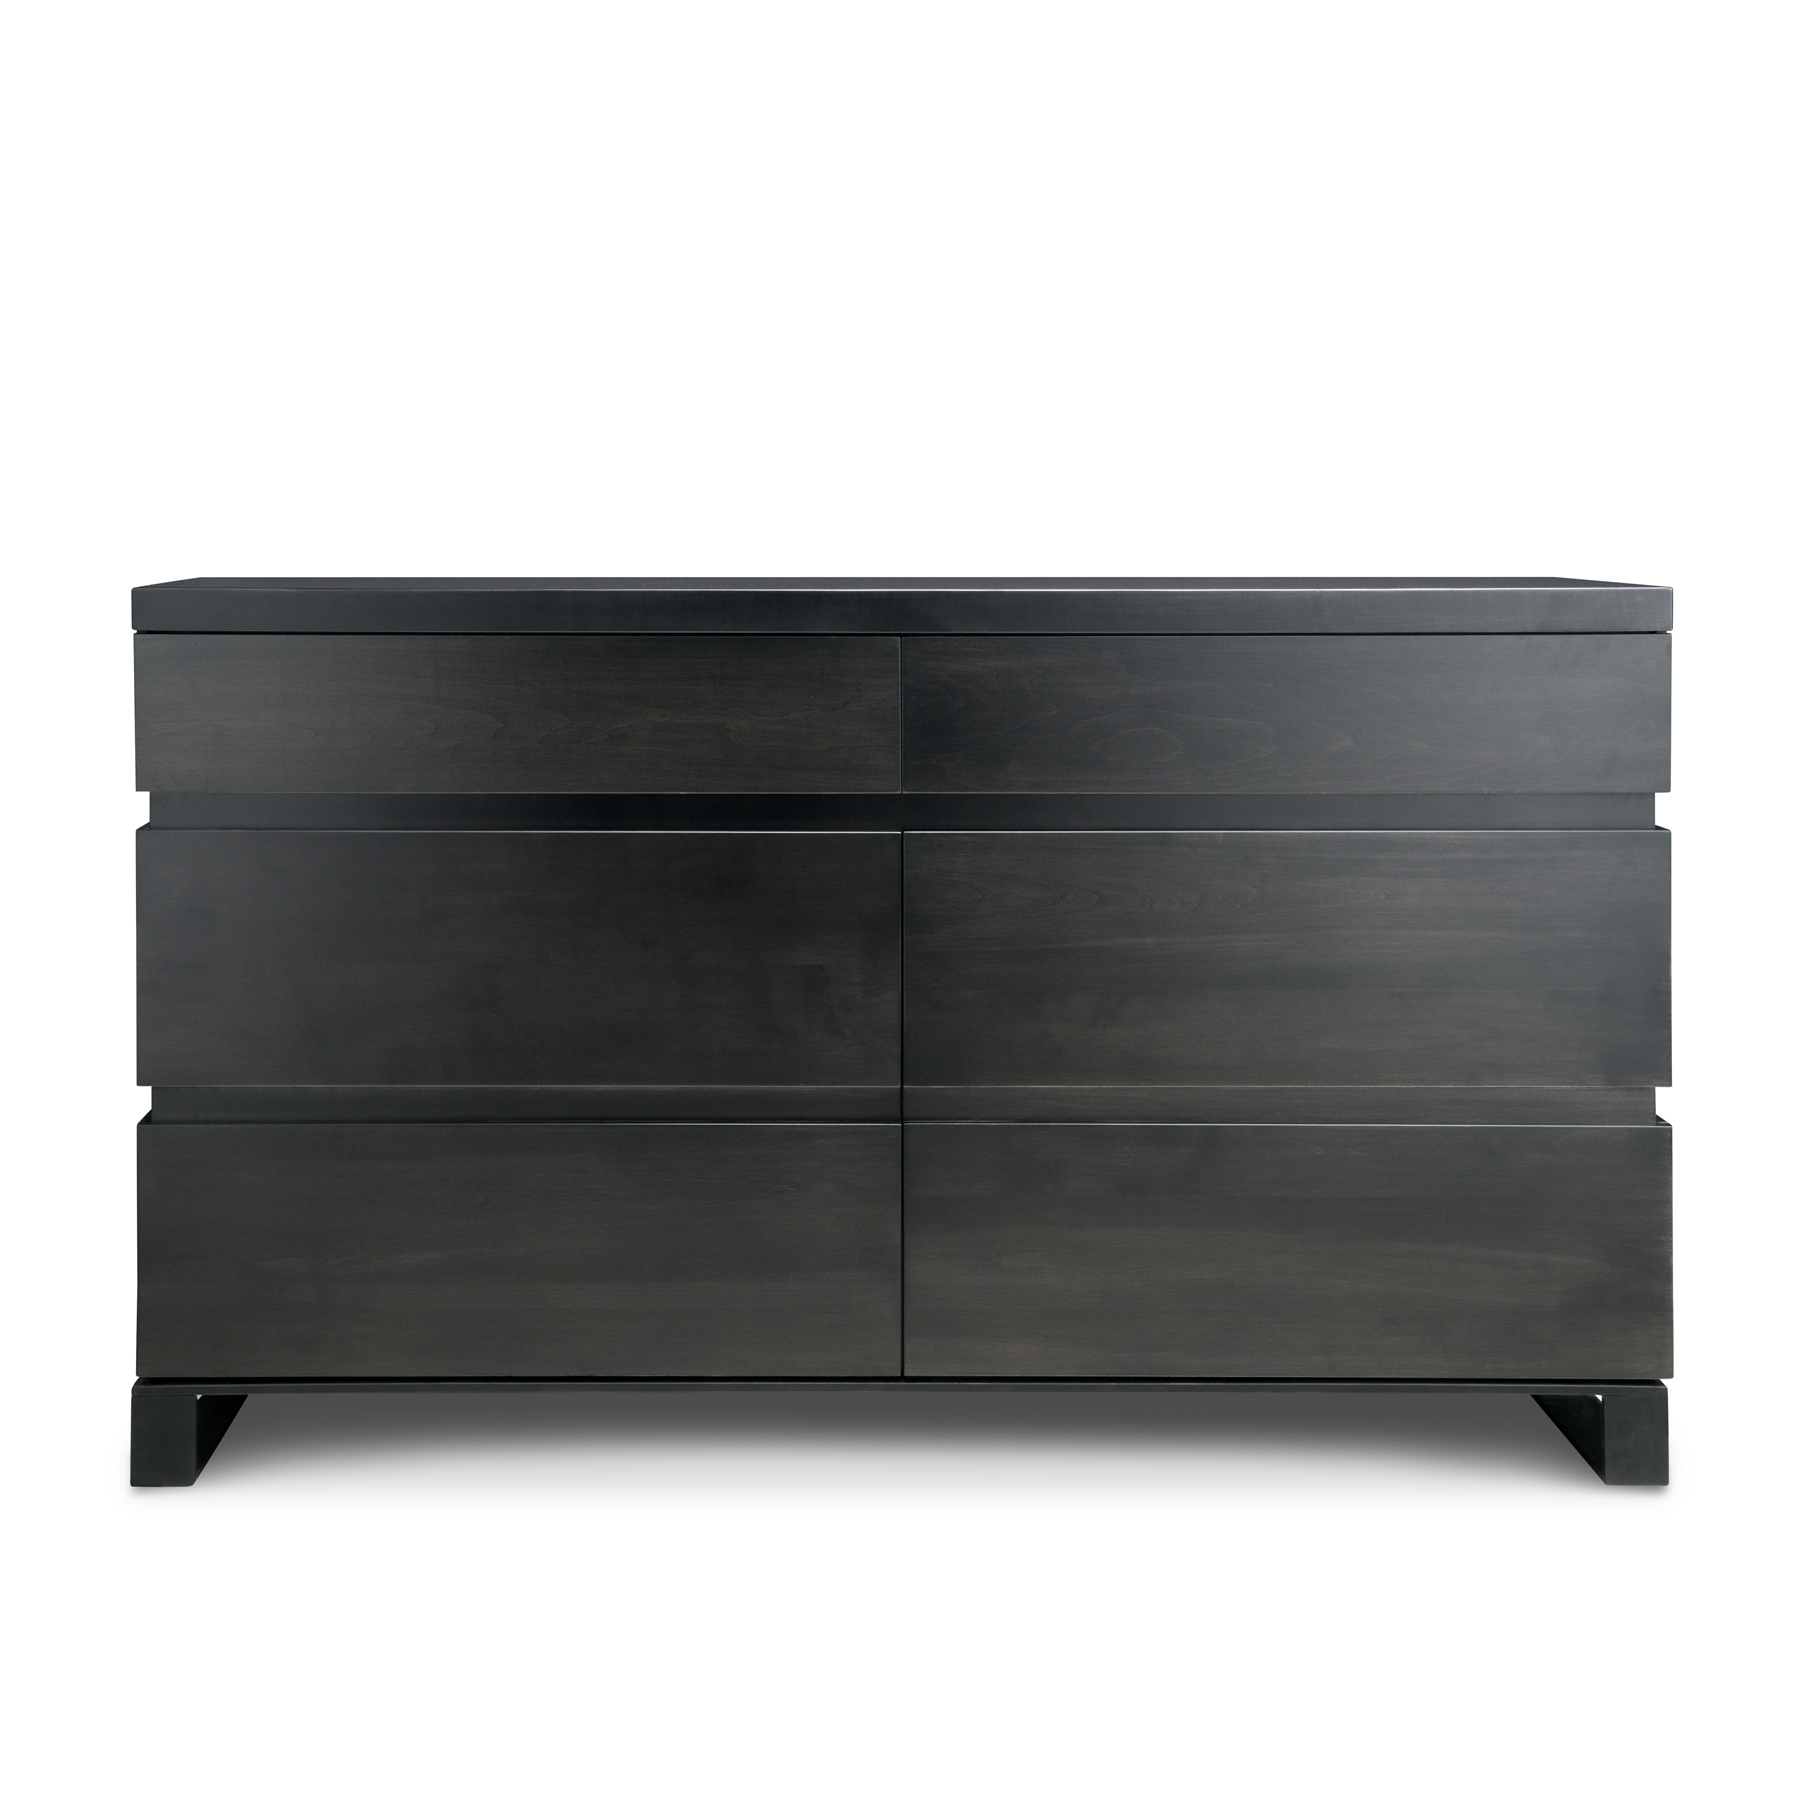 Ellen-Sideboard-B-New-Proof-1.jpg